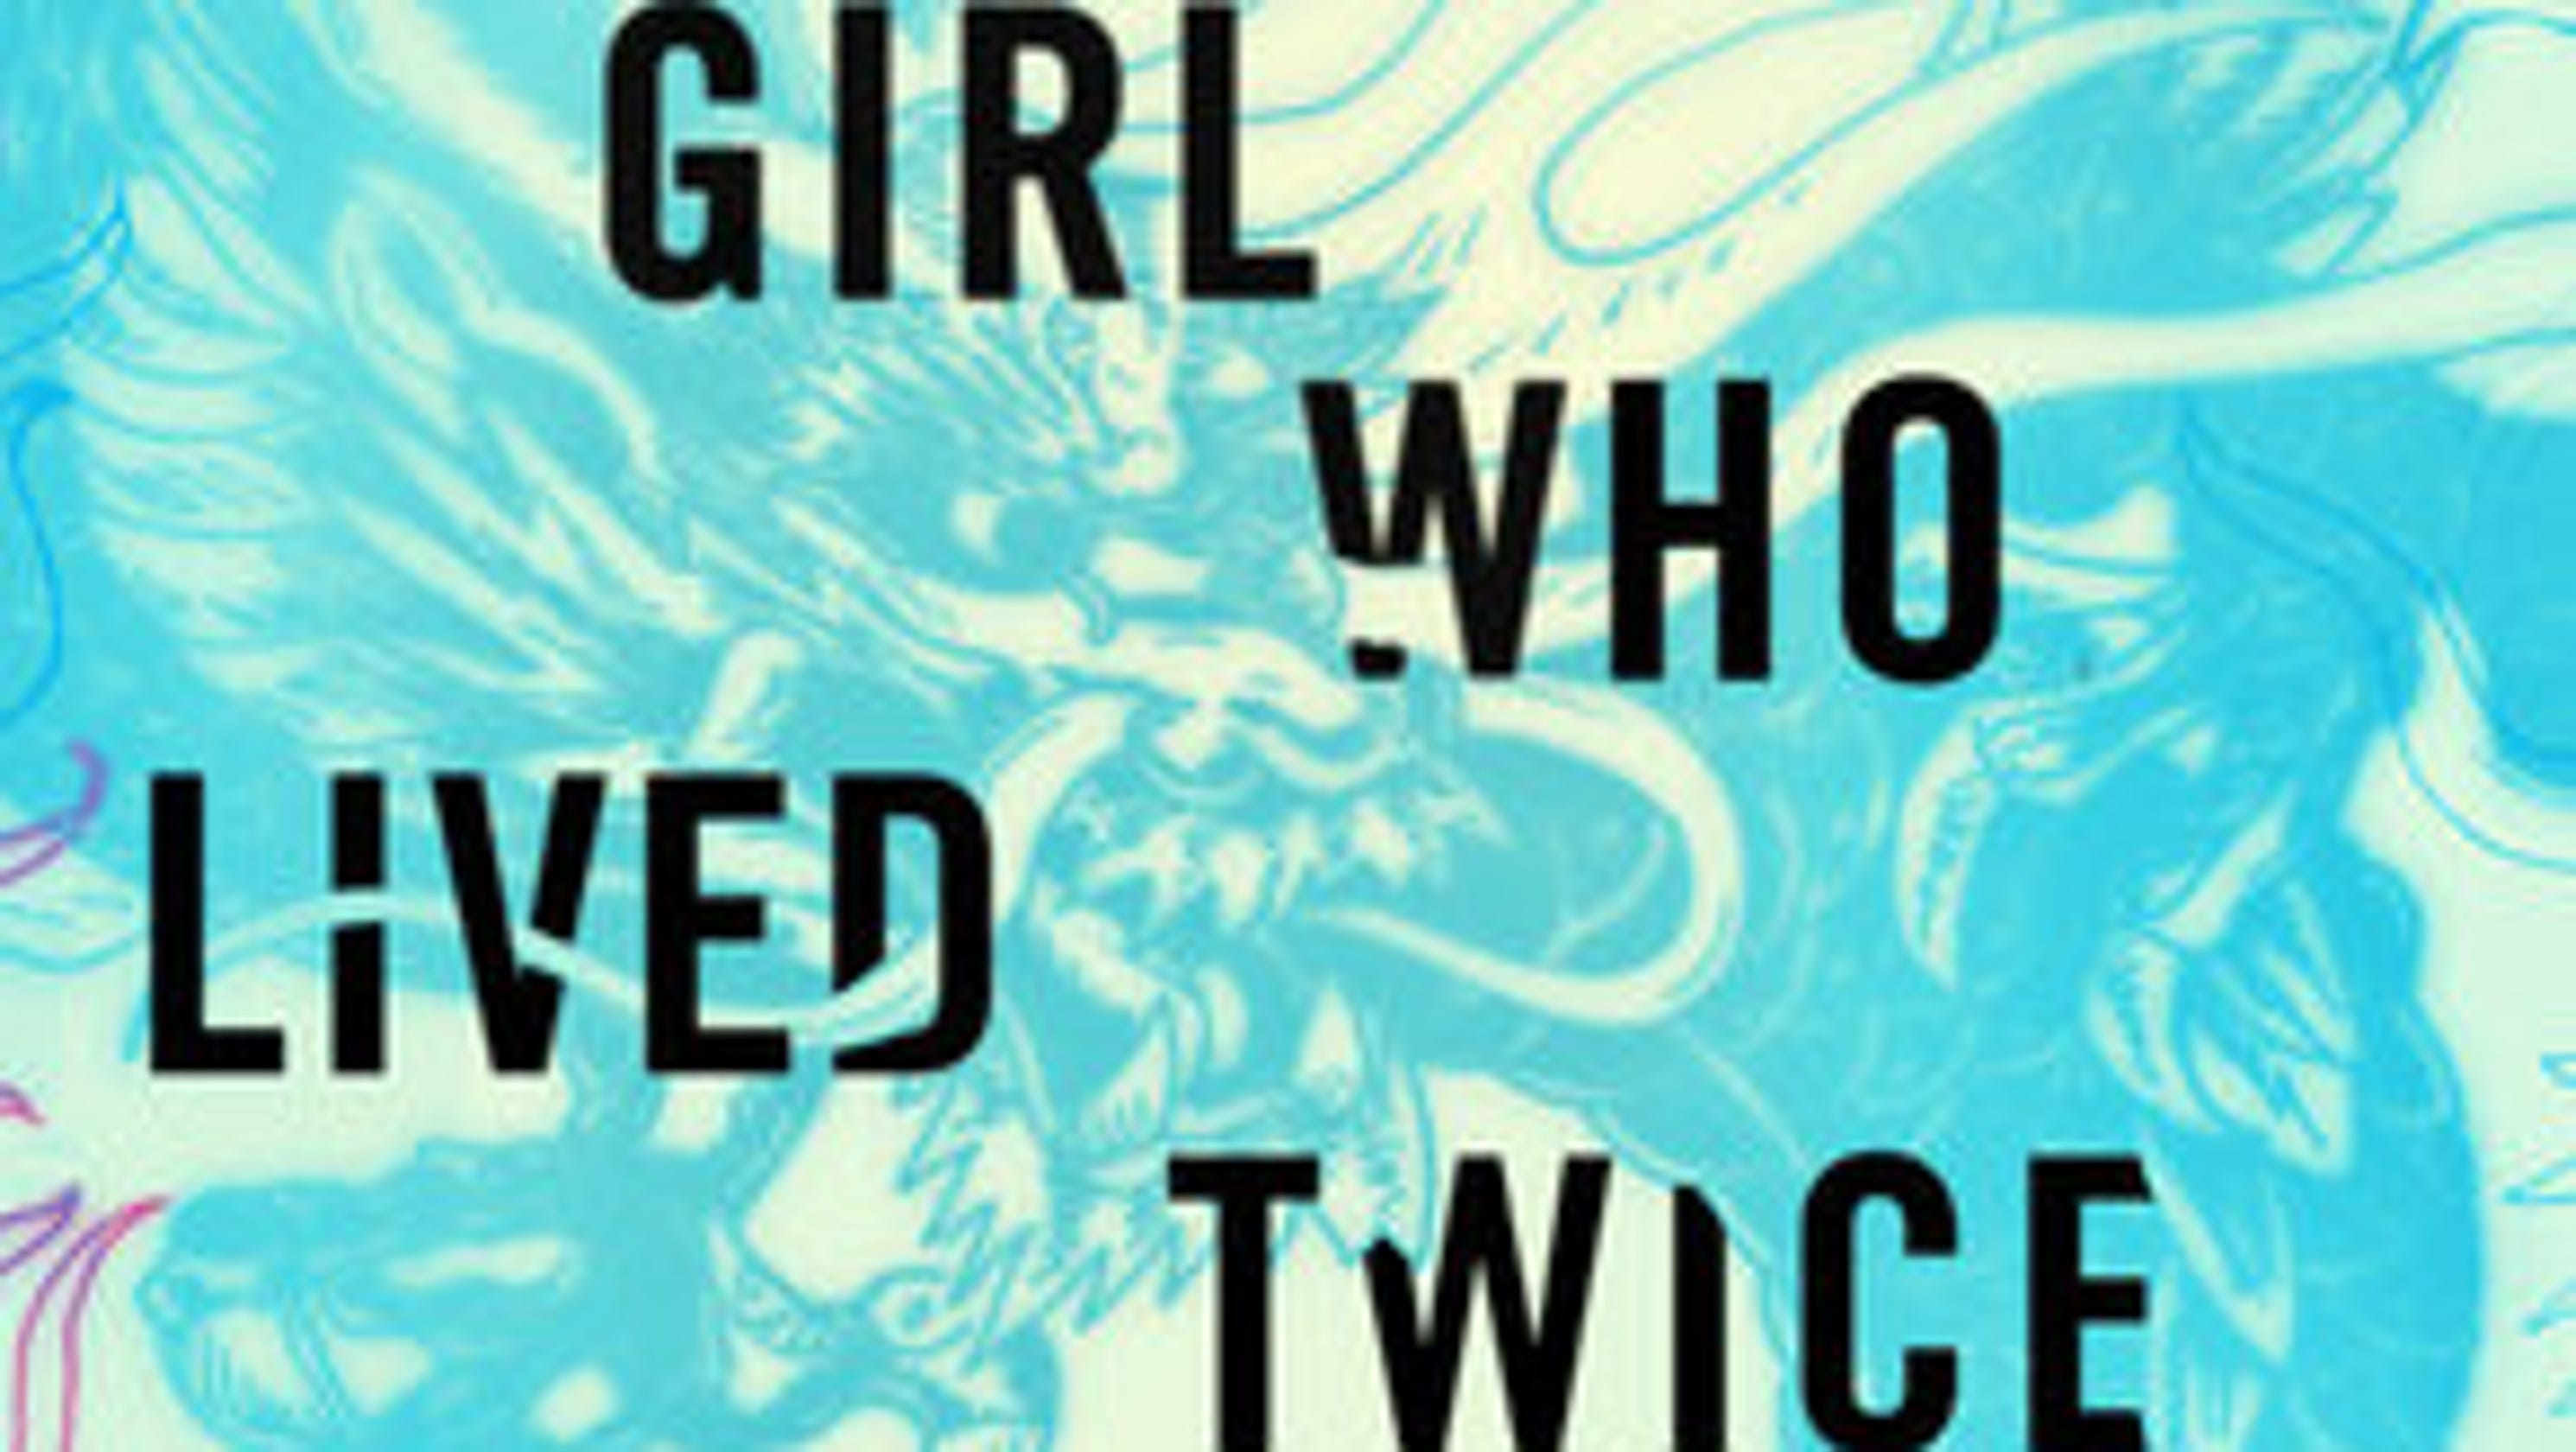 5 books not to miss: 'Girl With the Dragon Tattoo' Lisbeth Salander returns, 'Respect' tackles sex